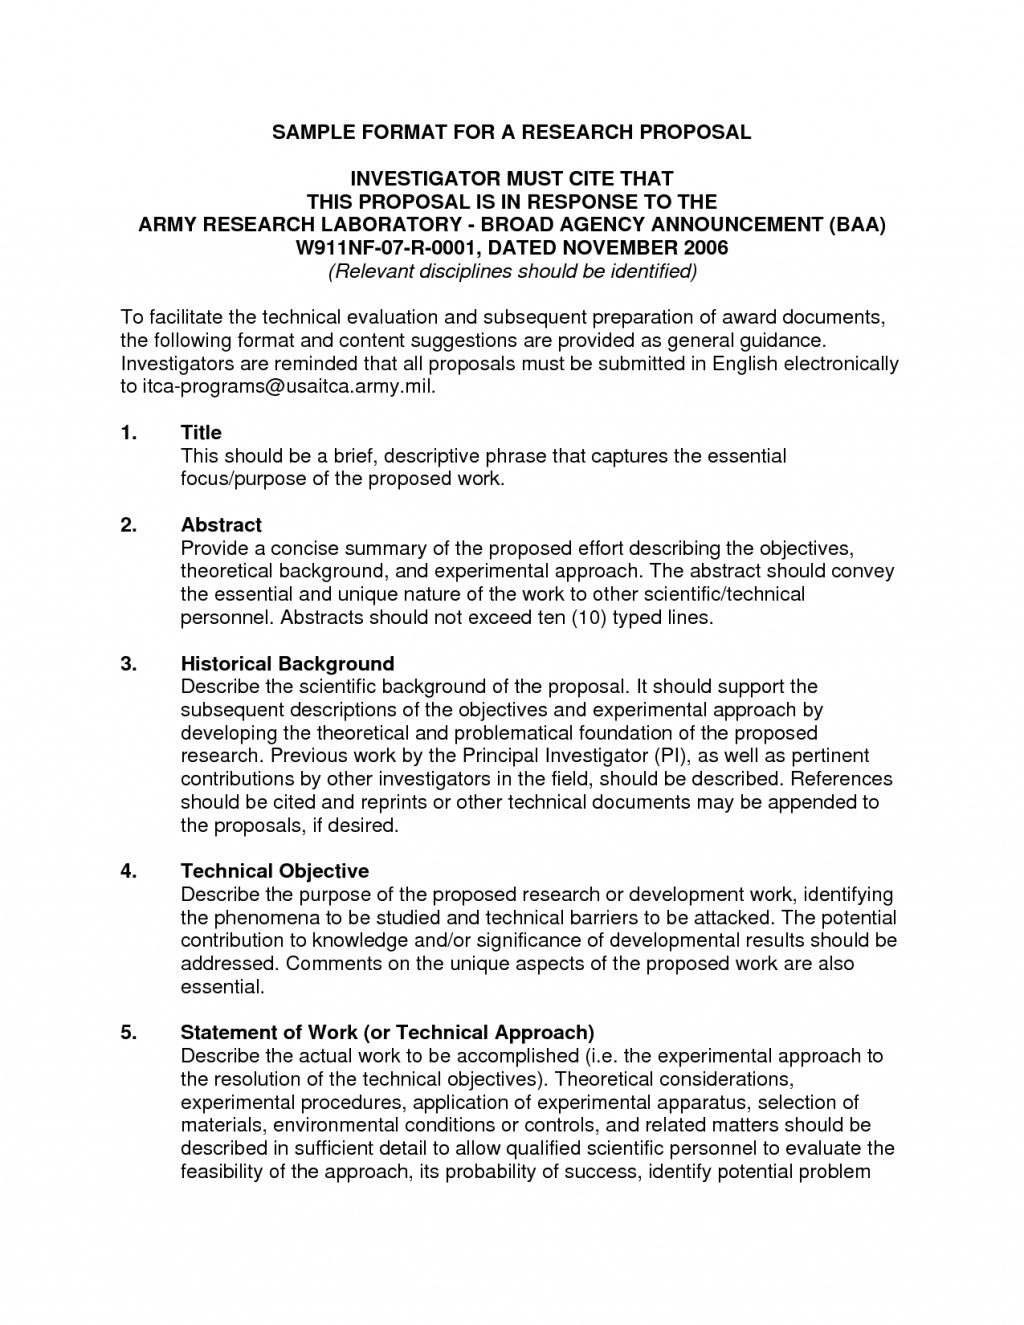 011 Evaluation Essay Topics Best Argumentative Essays Looking For And Persuasive Argument Awful Questions With Criteria Large